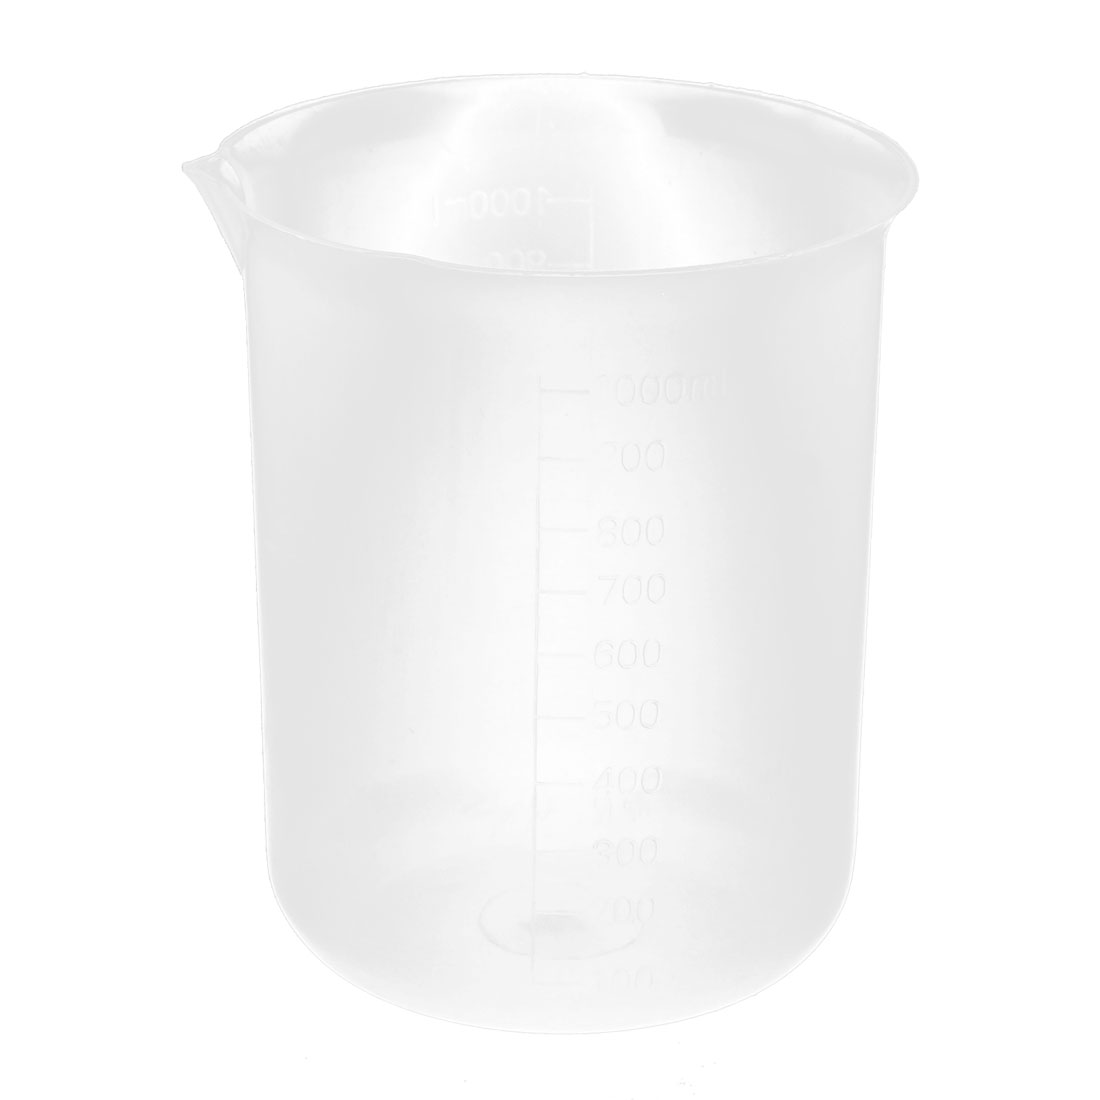 Laboratory Plastic Measuring Cup Beaker 1000mL Capacity Clear